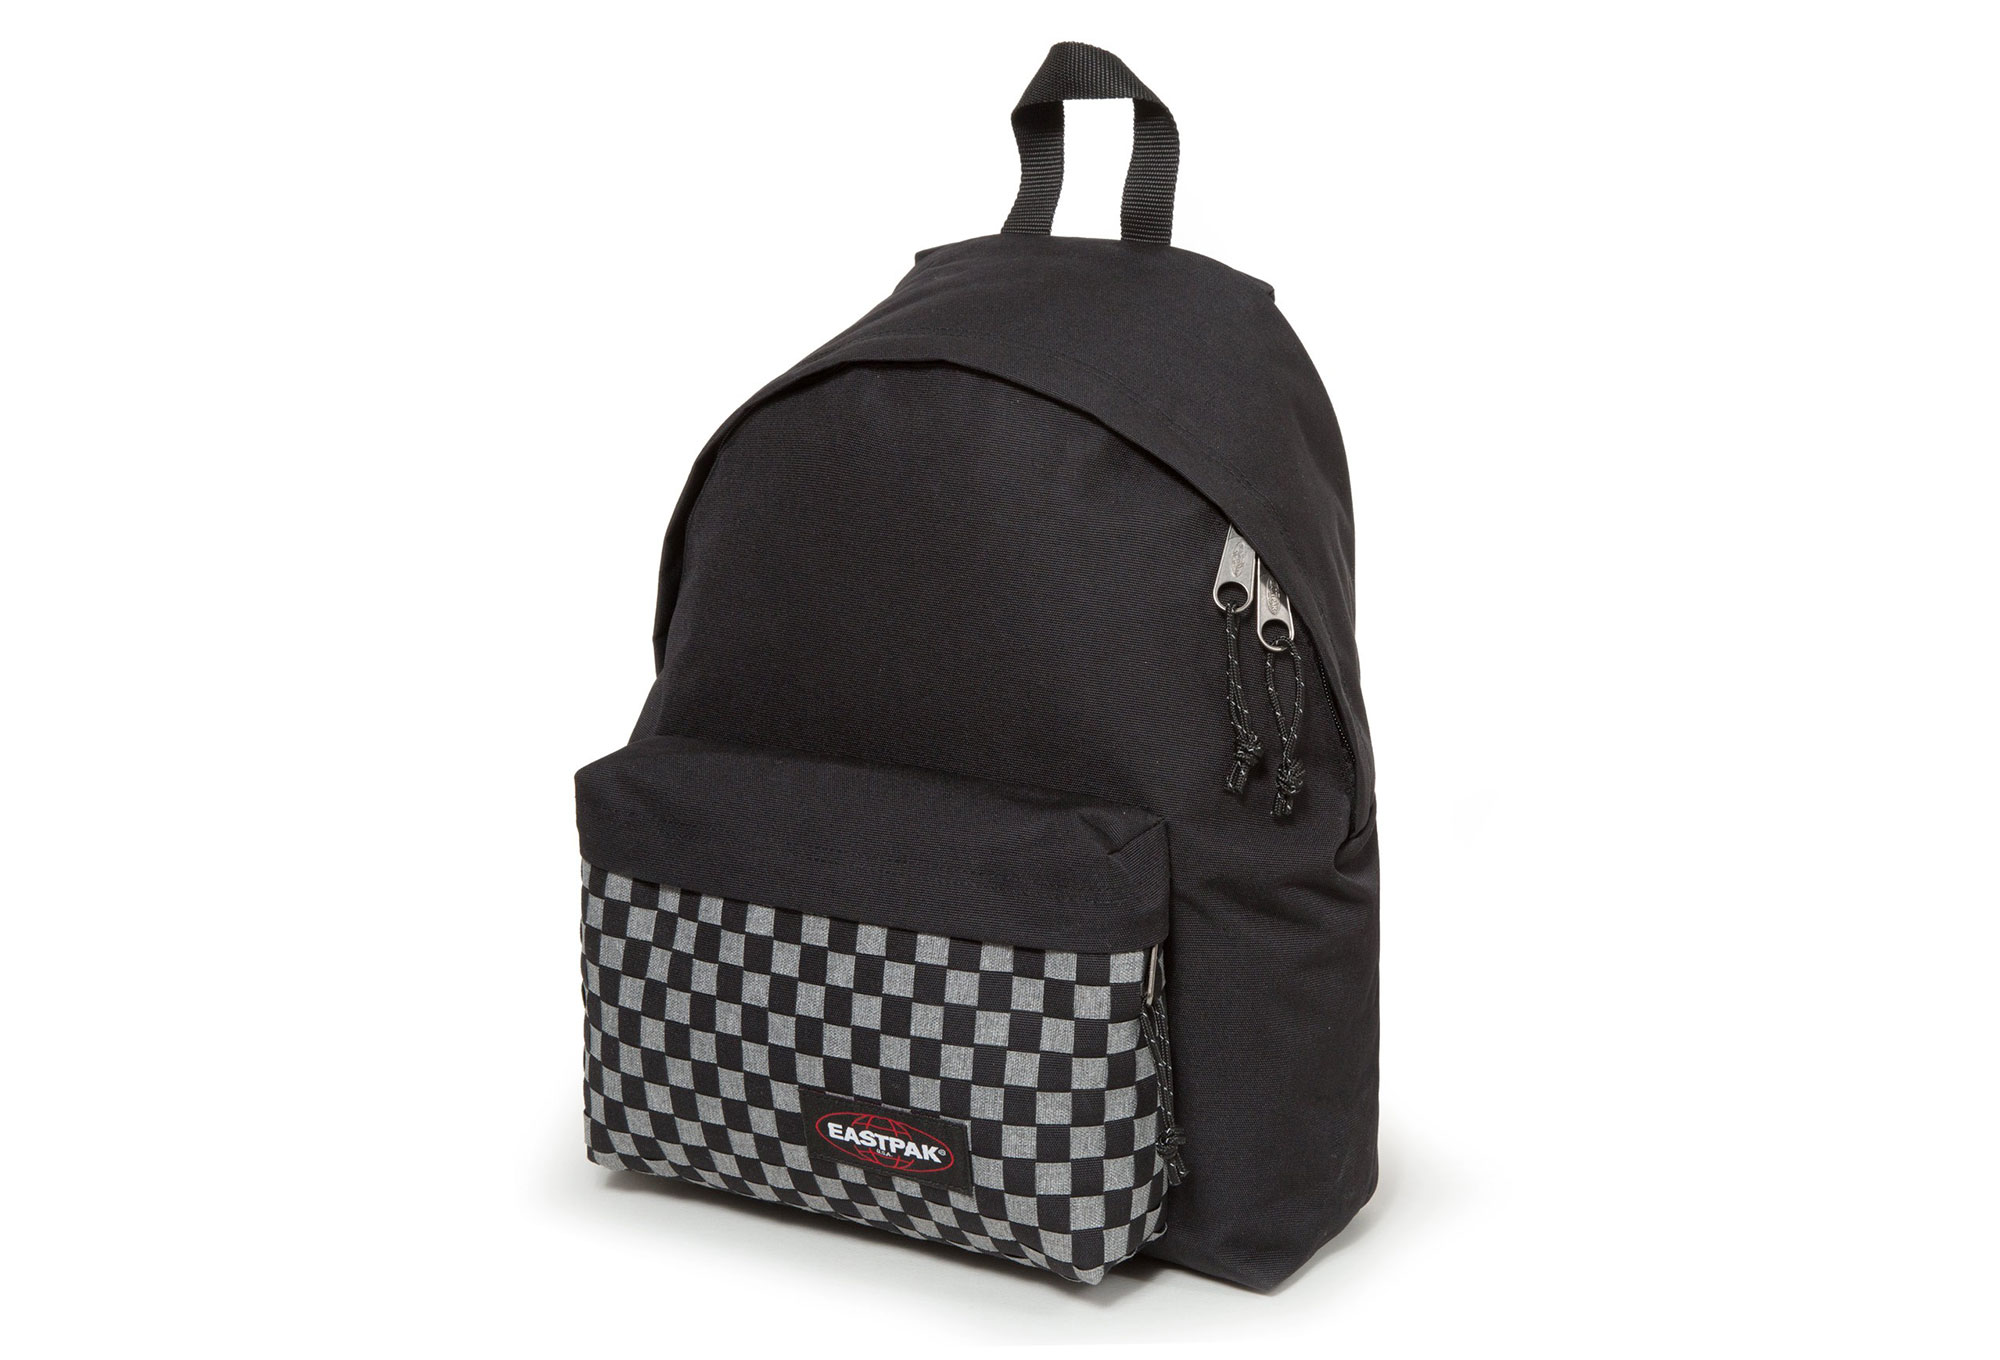 sac dos eastpak padded pak r grey weave noir gris. Black Bedroom Furniture Sets. Home Design Ideas